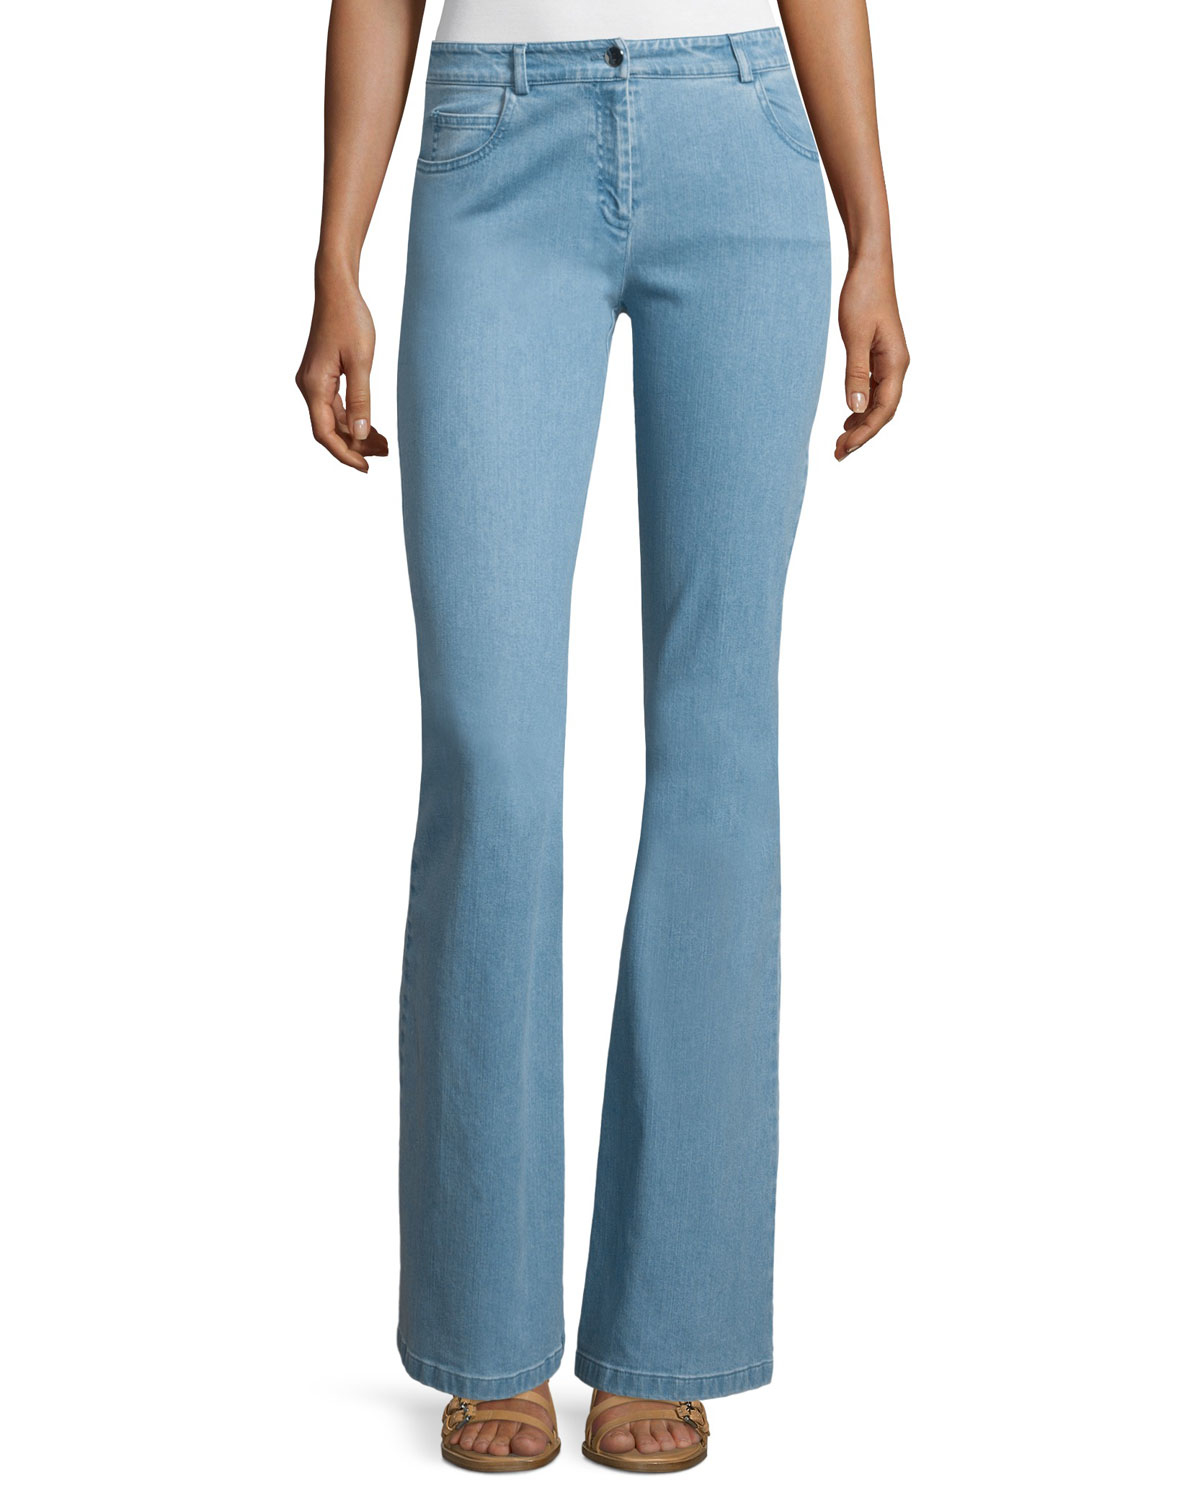 michael kors mid rise flare leg contour jeans in blue lyst. Black Bedroom Furniture Sets. Home Design Ideas